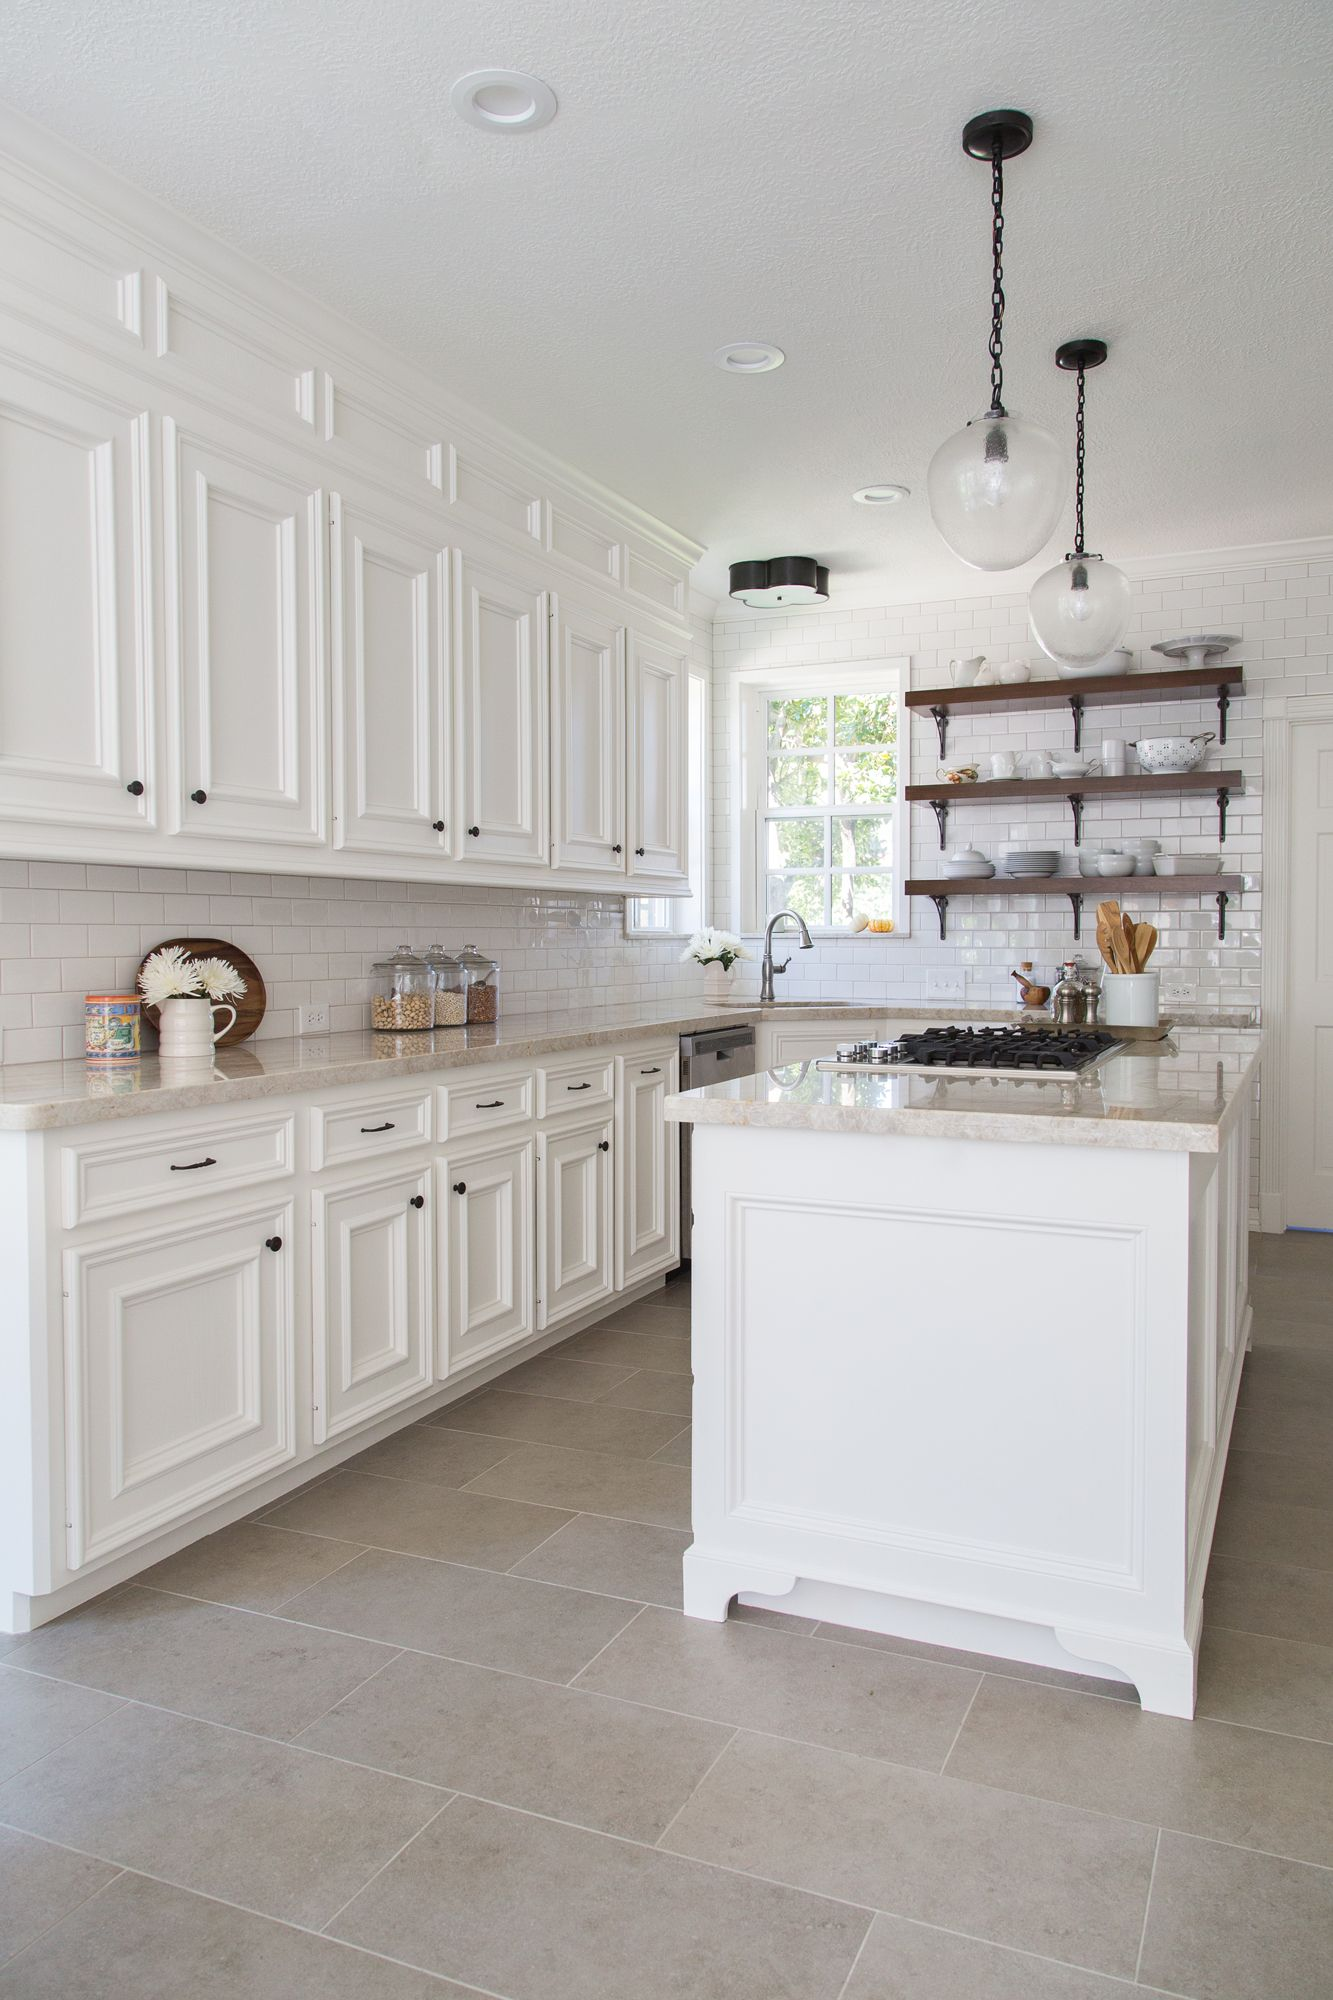 Tile flooring for kitchen  BEFORE u AFTER A Dark Dismal Kitchen Is Made Light And Bright